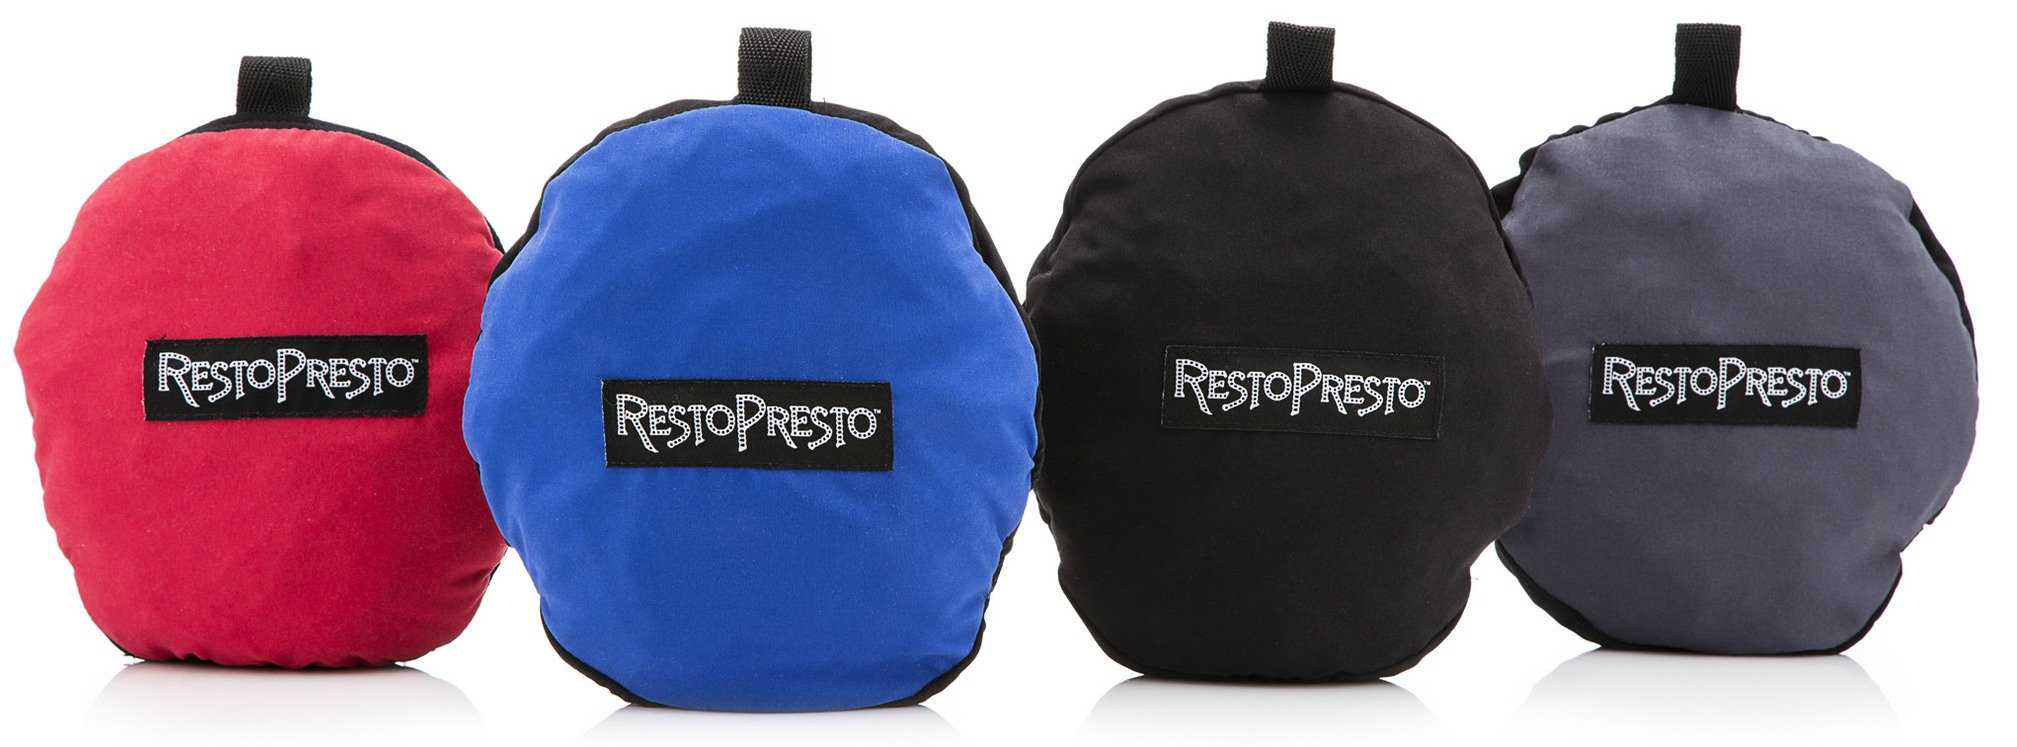 American Made Travel Essentials | Resto Presto converts from small pouch to versatile soft water-repellent thin layer to sit on, sit under and wear